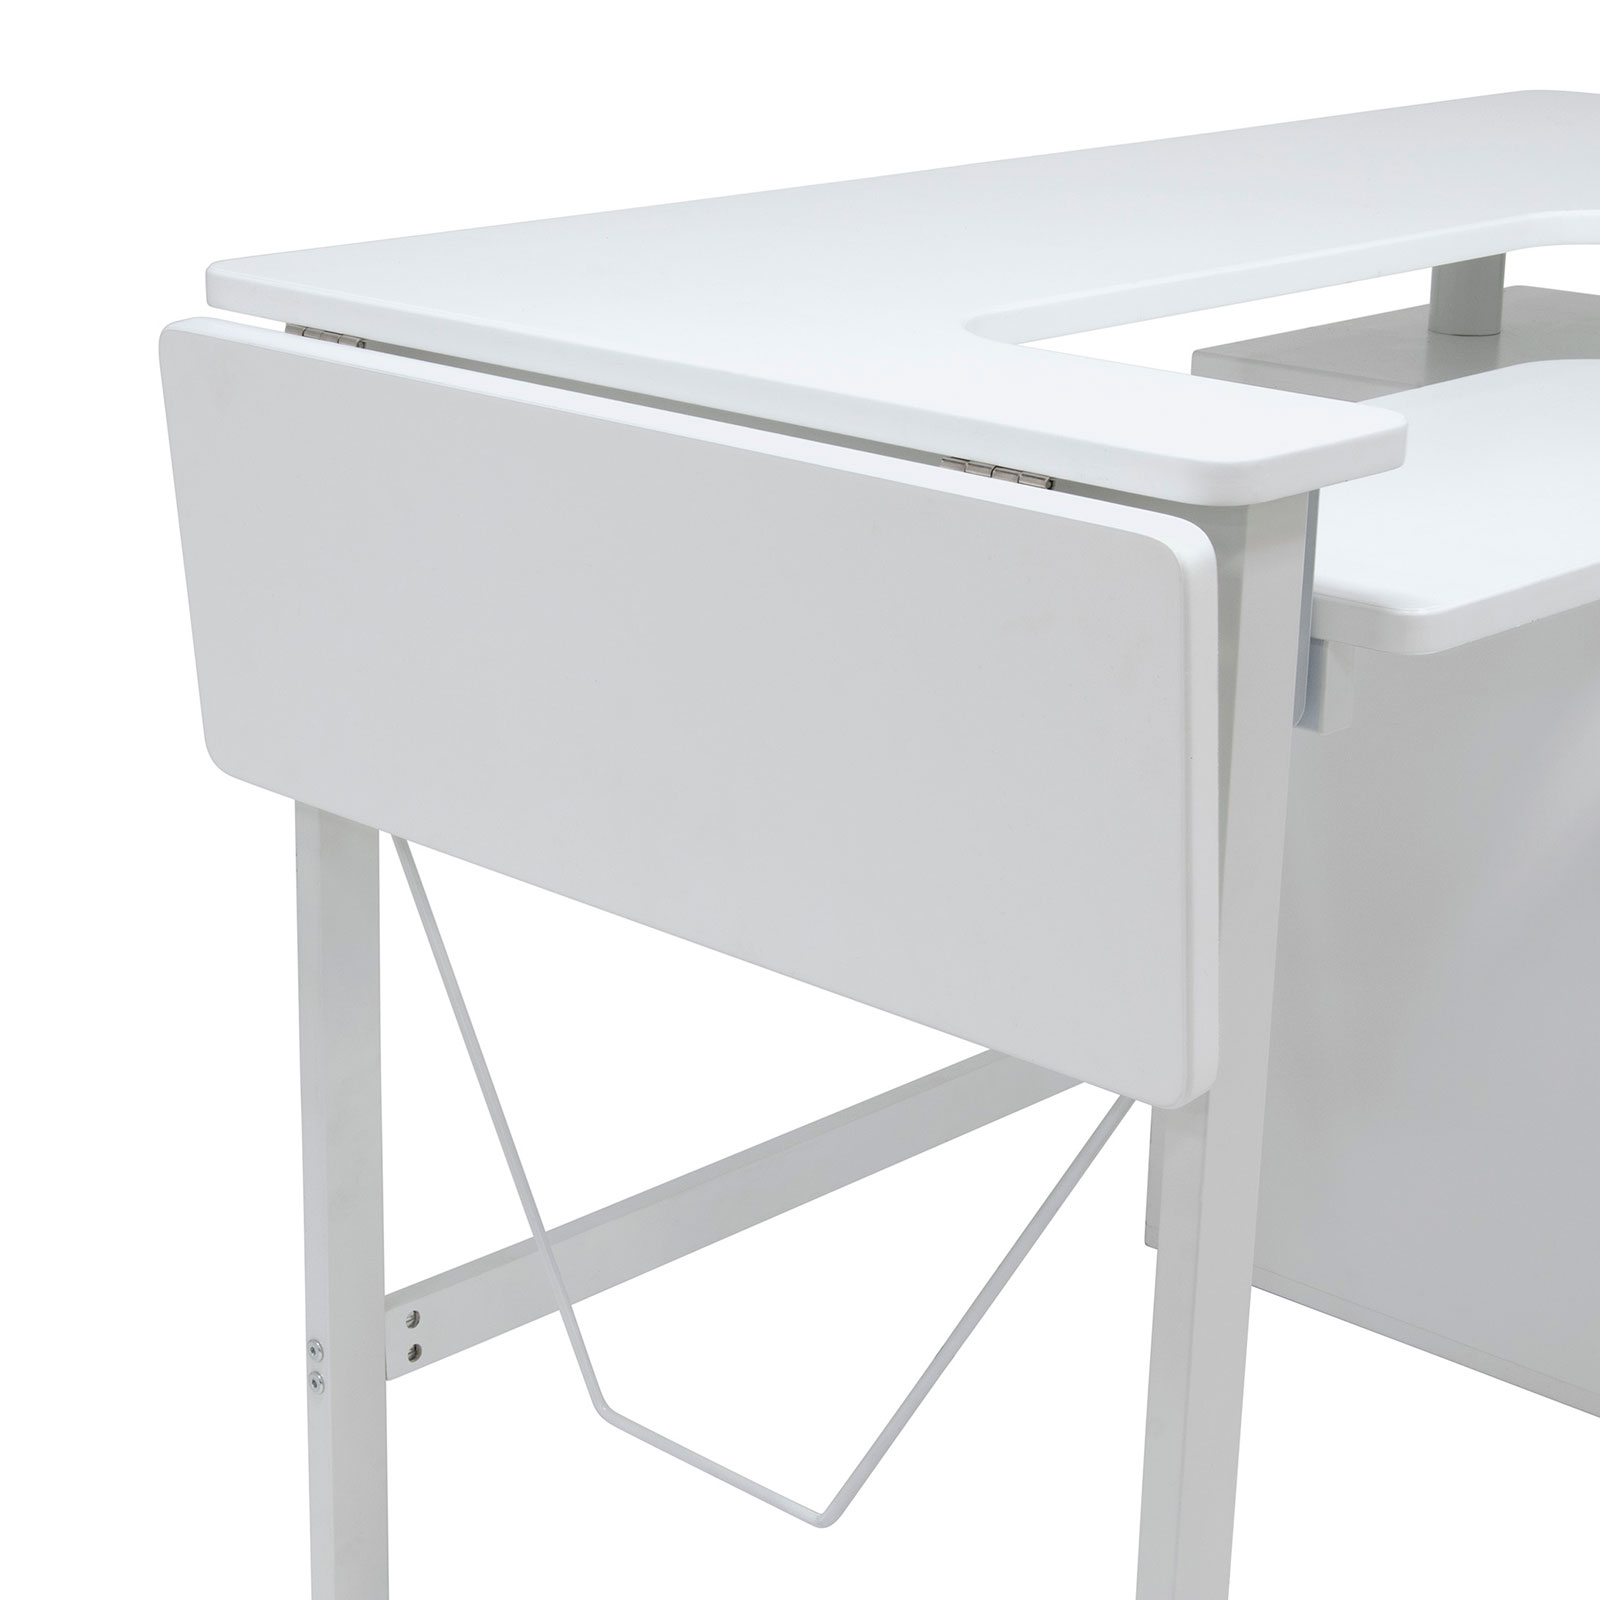 13397-Pro-Line-Sewing-Table-detail1b